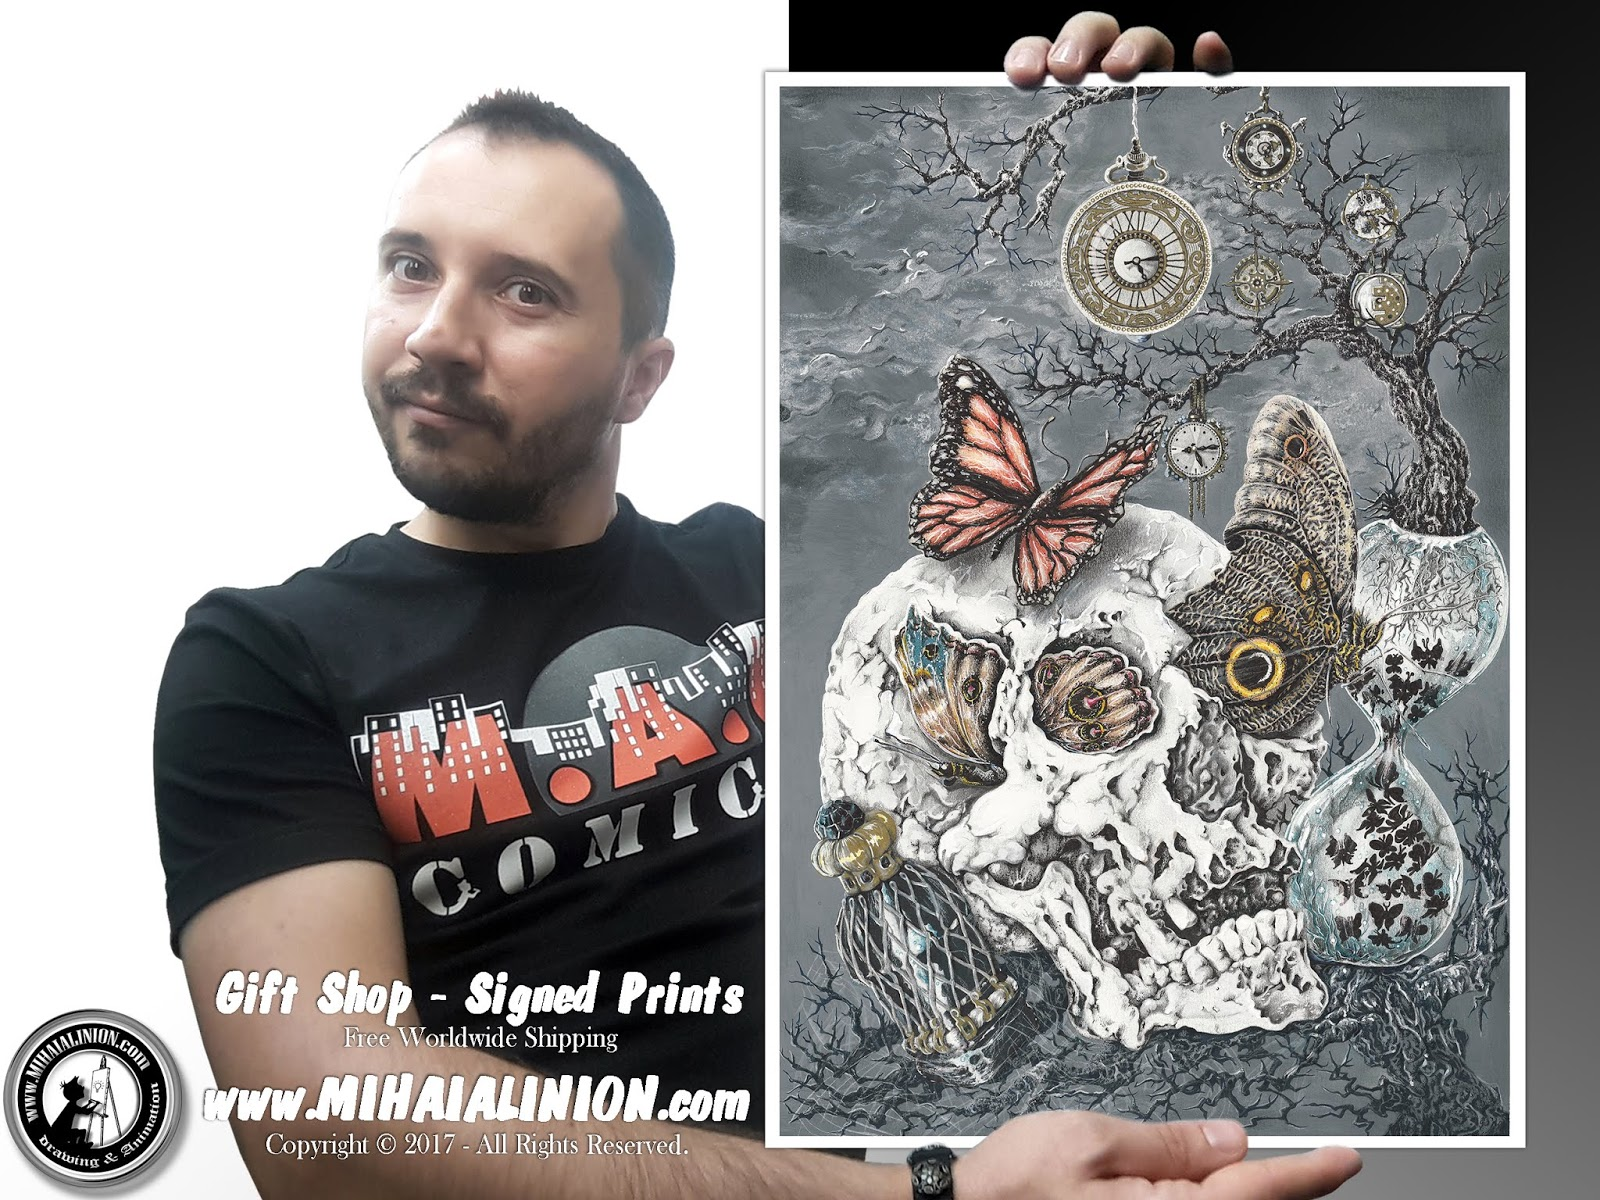 Drawing Vertex, Drawing Skull, Drawing fantasy art, skull art, butterfly on skull, painting skulls, butterfly effect, insane skull design, drawing vertex skull, how to draw a skull, how to draw tattoo, tattoo design, youtube artist, MAI Comics, Mihai Alin Ion, art by mihai alin ion, how to draw, artselfie, drawing ideas, free drawing lessons, drawing tutorial, art, drawing timelapse, dessin, disegno, dibujo, drawing, illustration, painting, design, realistic 3d art, coloured pencils, www.mihaialinion.com, 2017, pencil drawing, tempera, acrilics paint, marker, gouache painting, mixed media, comics, comic book, caricature, portrait, cum sa desenezi, caricaturi mihai alin ion, caricaturi si portrete  la comanda, eveniment caricaturi, caricaturi la nunta, caricaturi la botez, caricaturi la majorat, desene pe pereti, desene pentru copii, ilustratie carte, benzi desenate, caricaturi, portrete, comanda caricaturi